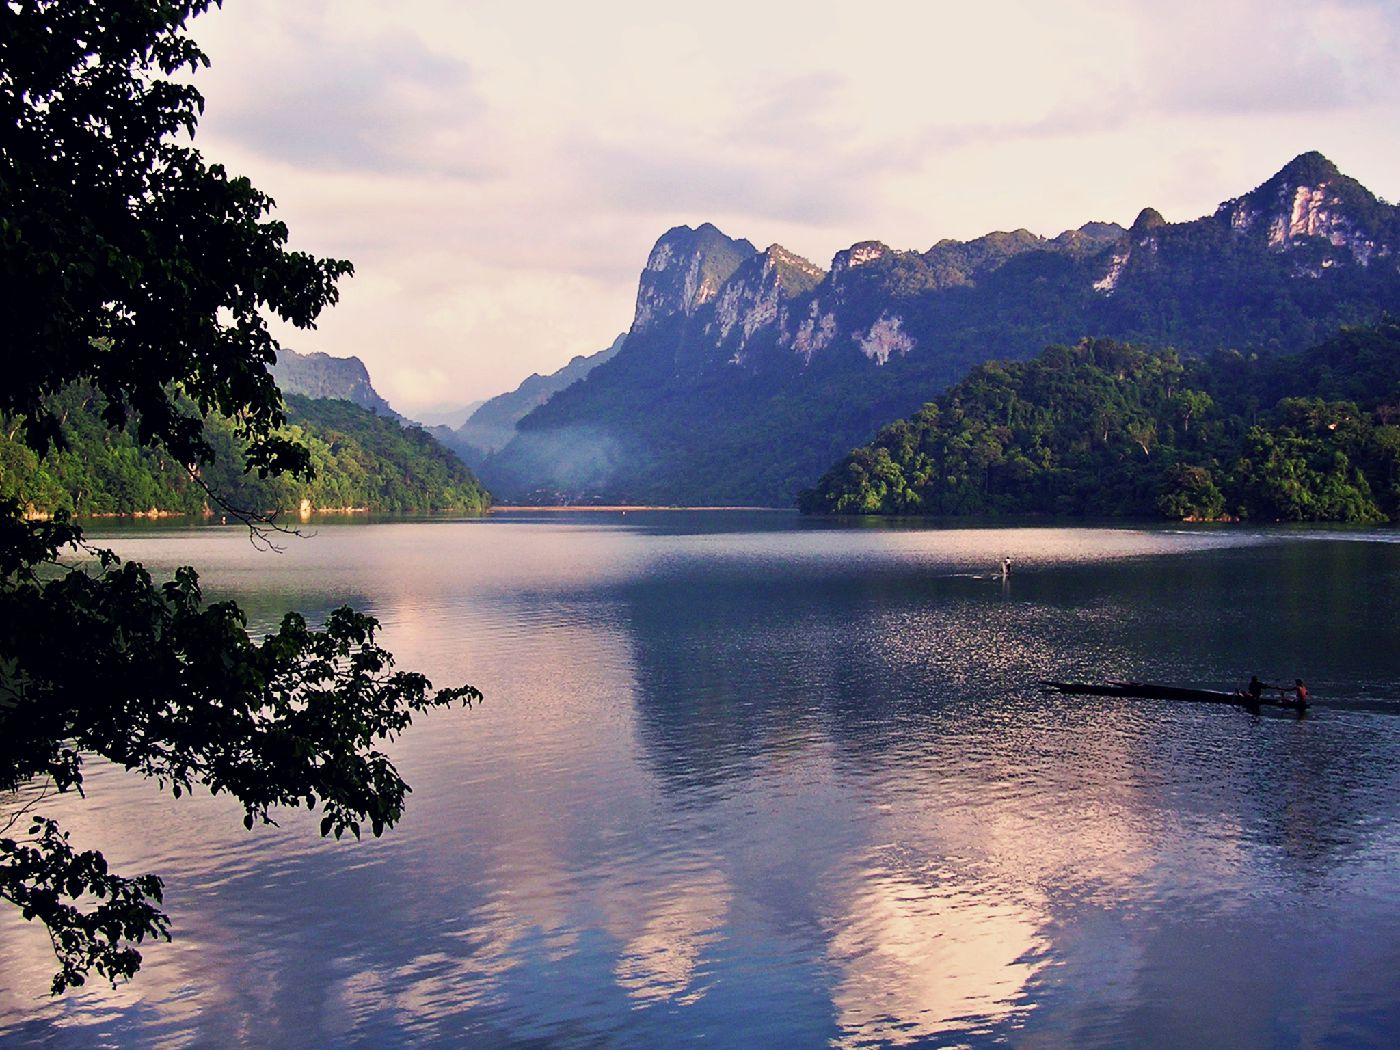 What to see and do in Ba Be Lake, Bac Kan - Asianwaytravel.com